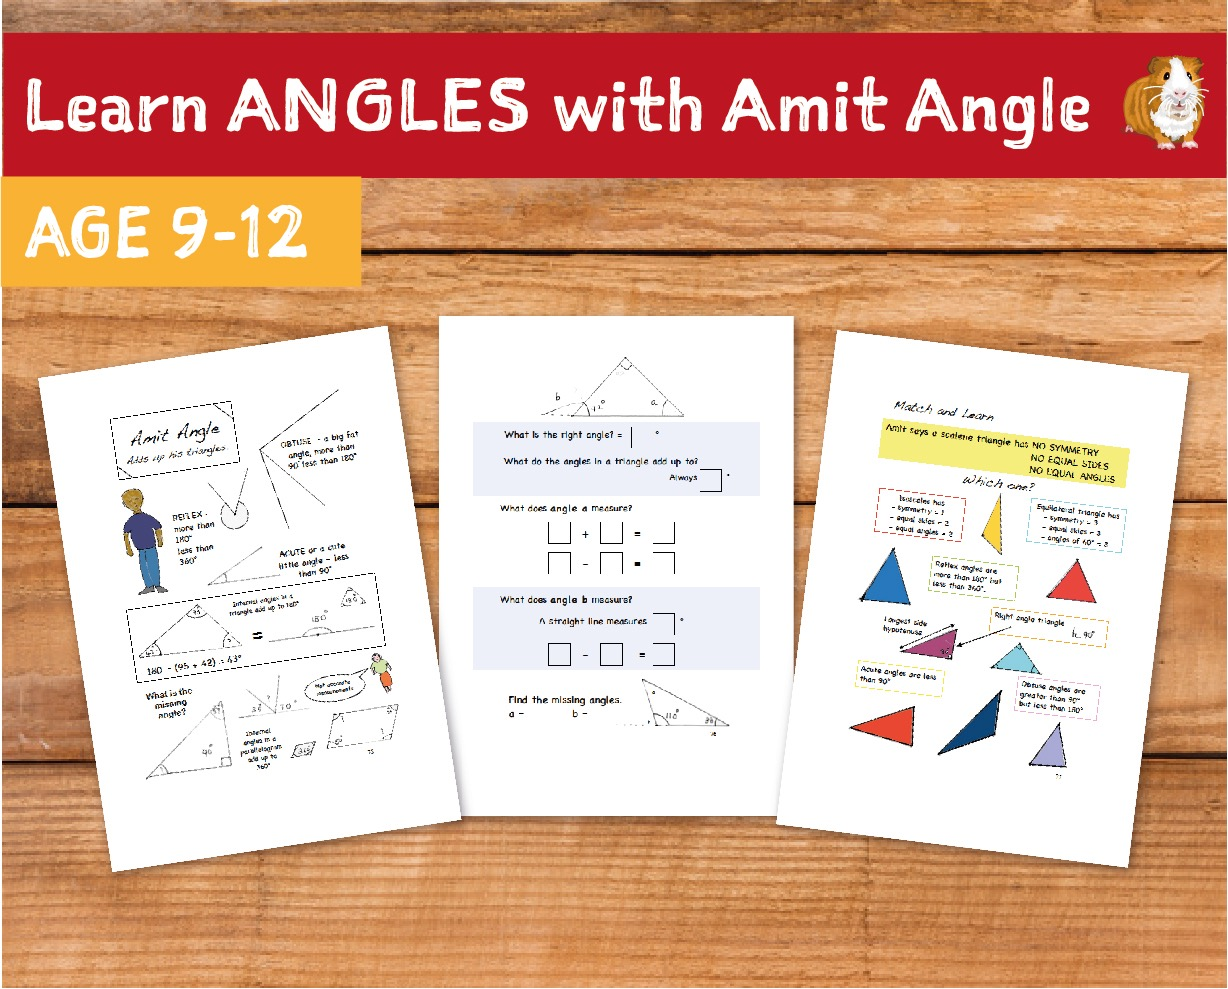 Learn Angles With Amit Angle (9-12 years)